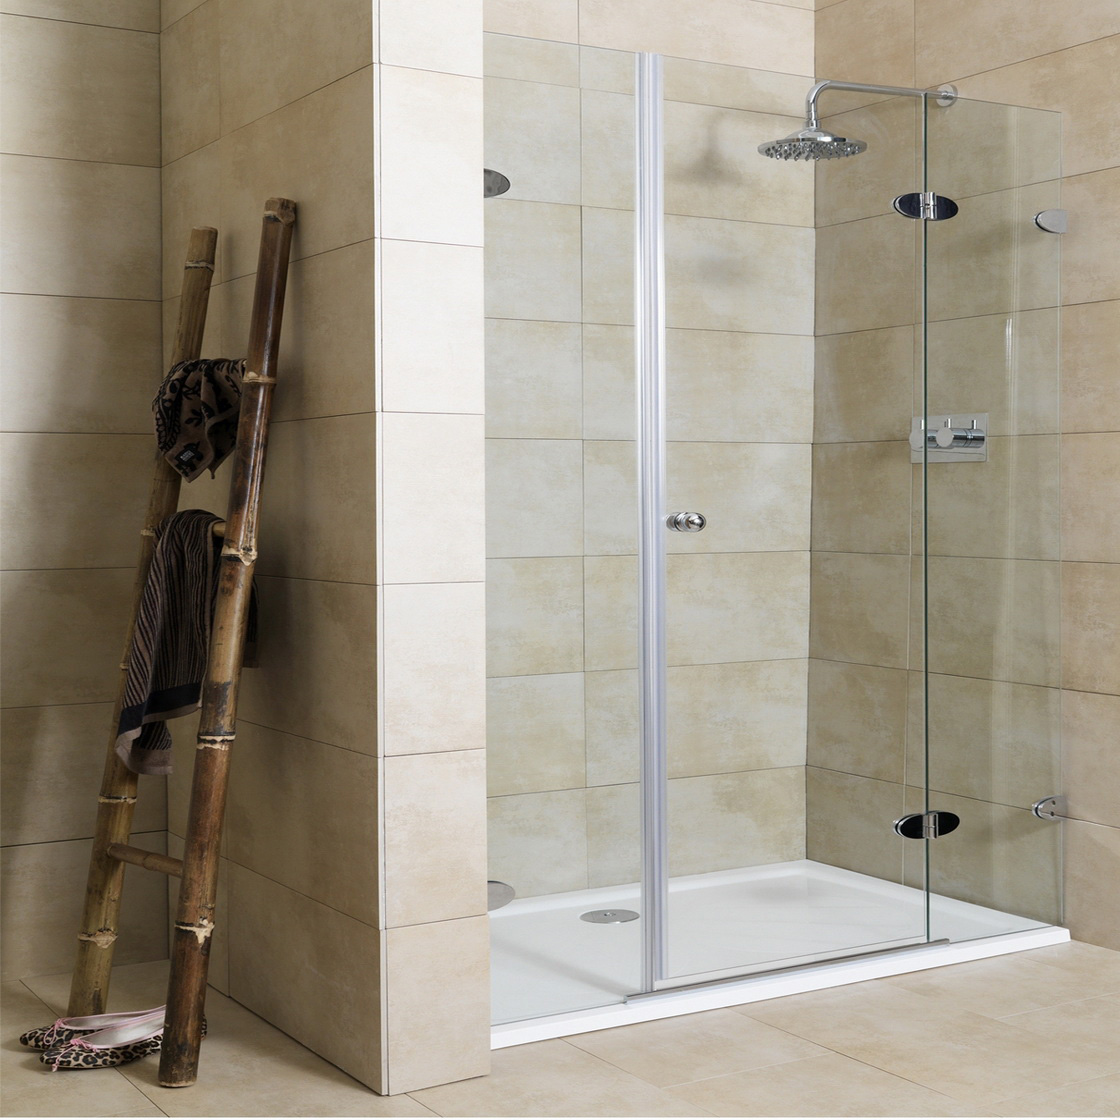 awesome frameless shower doors options ideas. Black Bedroom Furniture Sets. Home Design Ideas